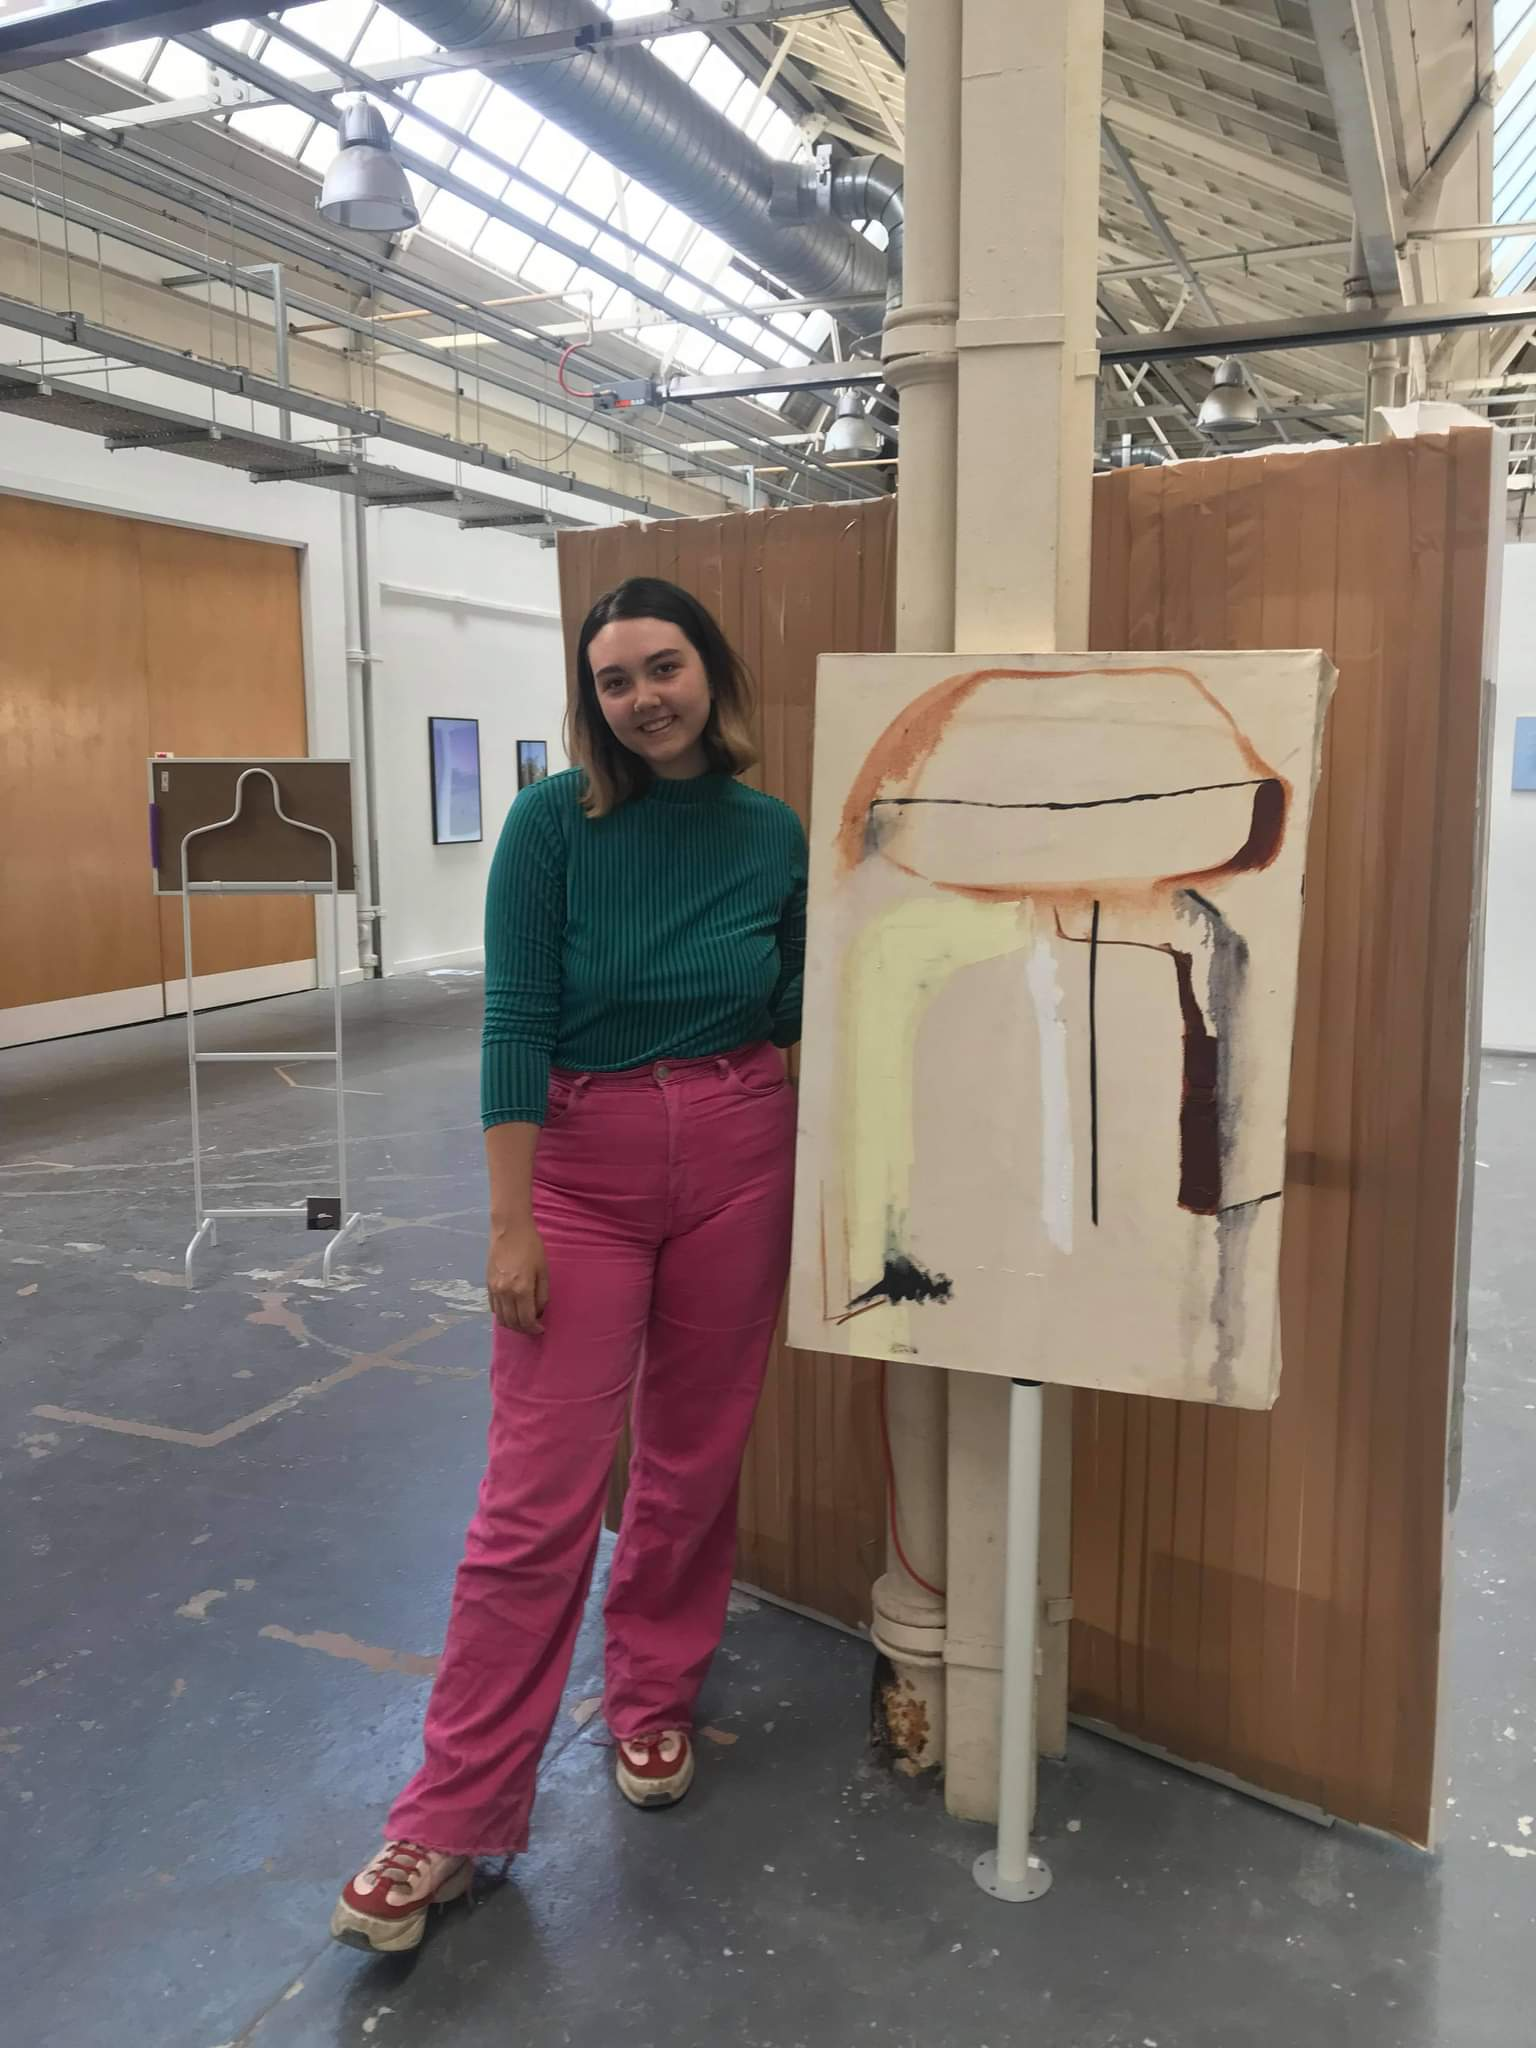 Profile image of Sam Harley standing next to one of their abstract paintings.